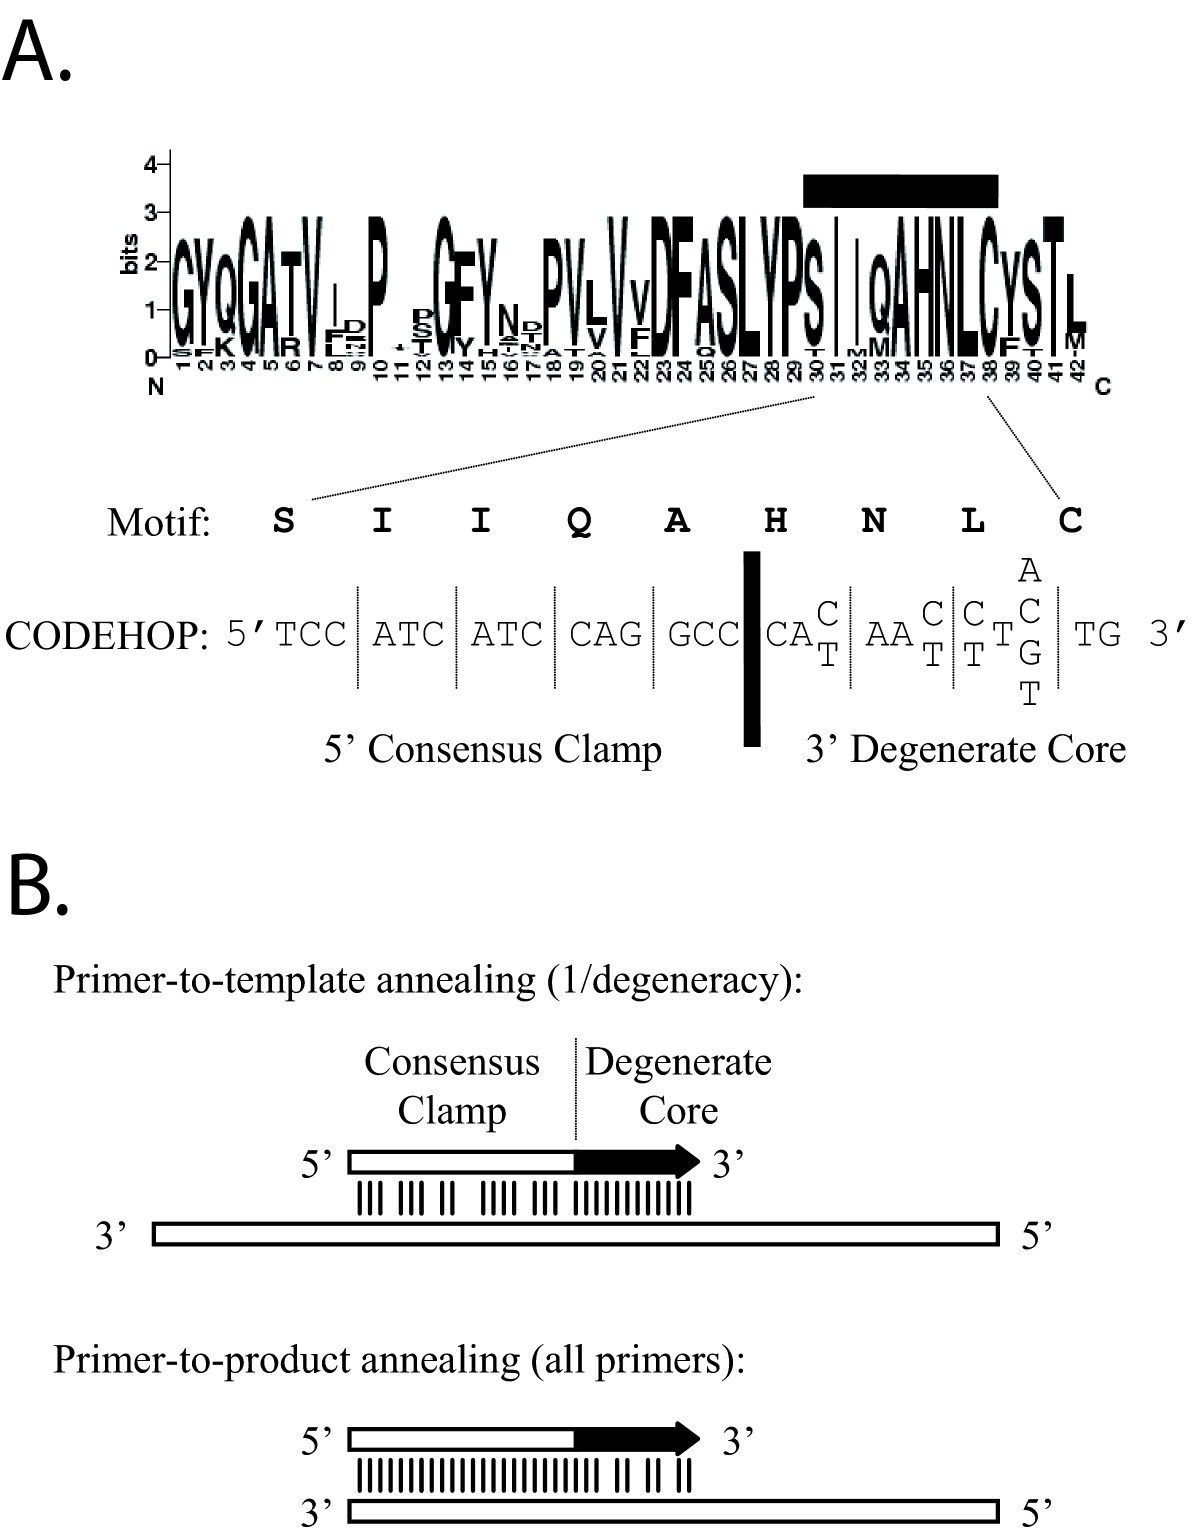 http://static-content.springer.com/image/art%3A10.1186%2F1743-422X-2-20/MediaObjects/12985_2005_Article_35_Fig1_HTML.jpg